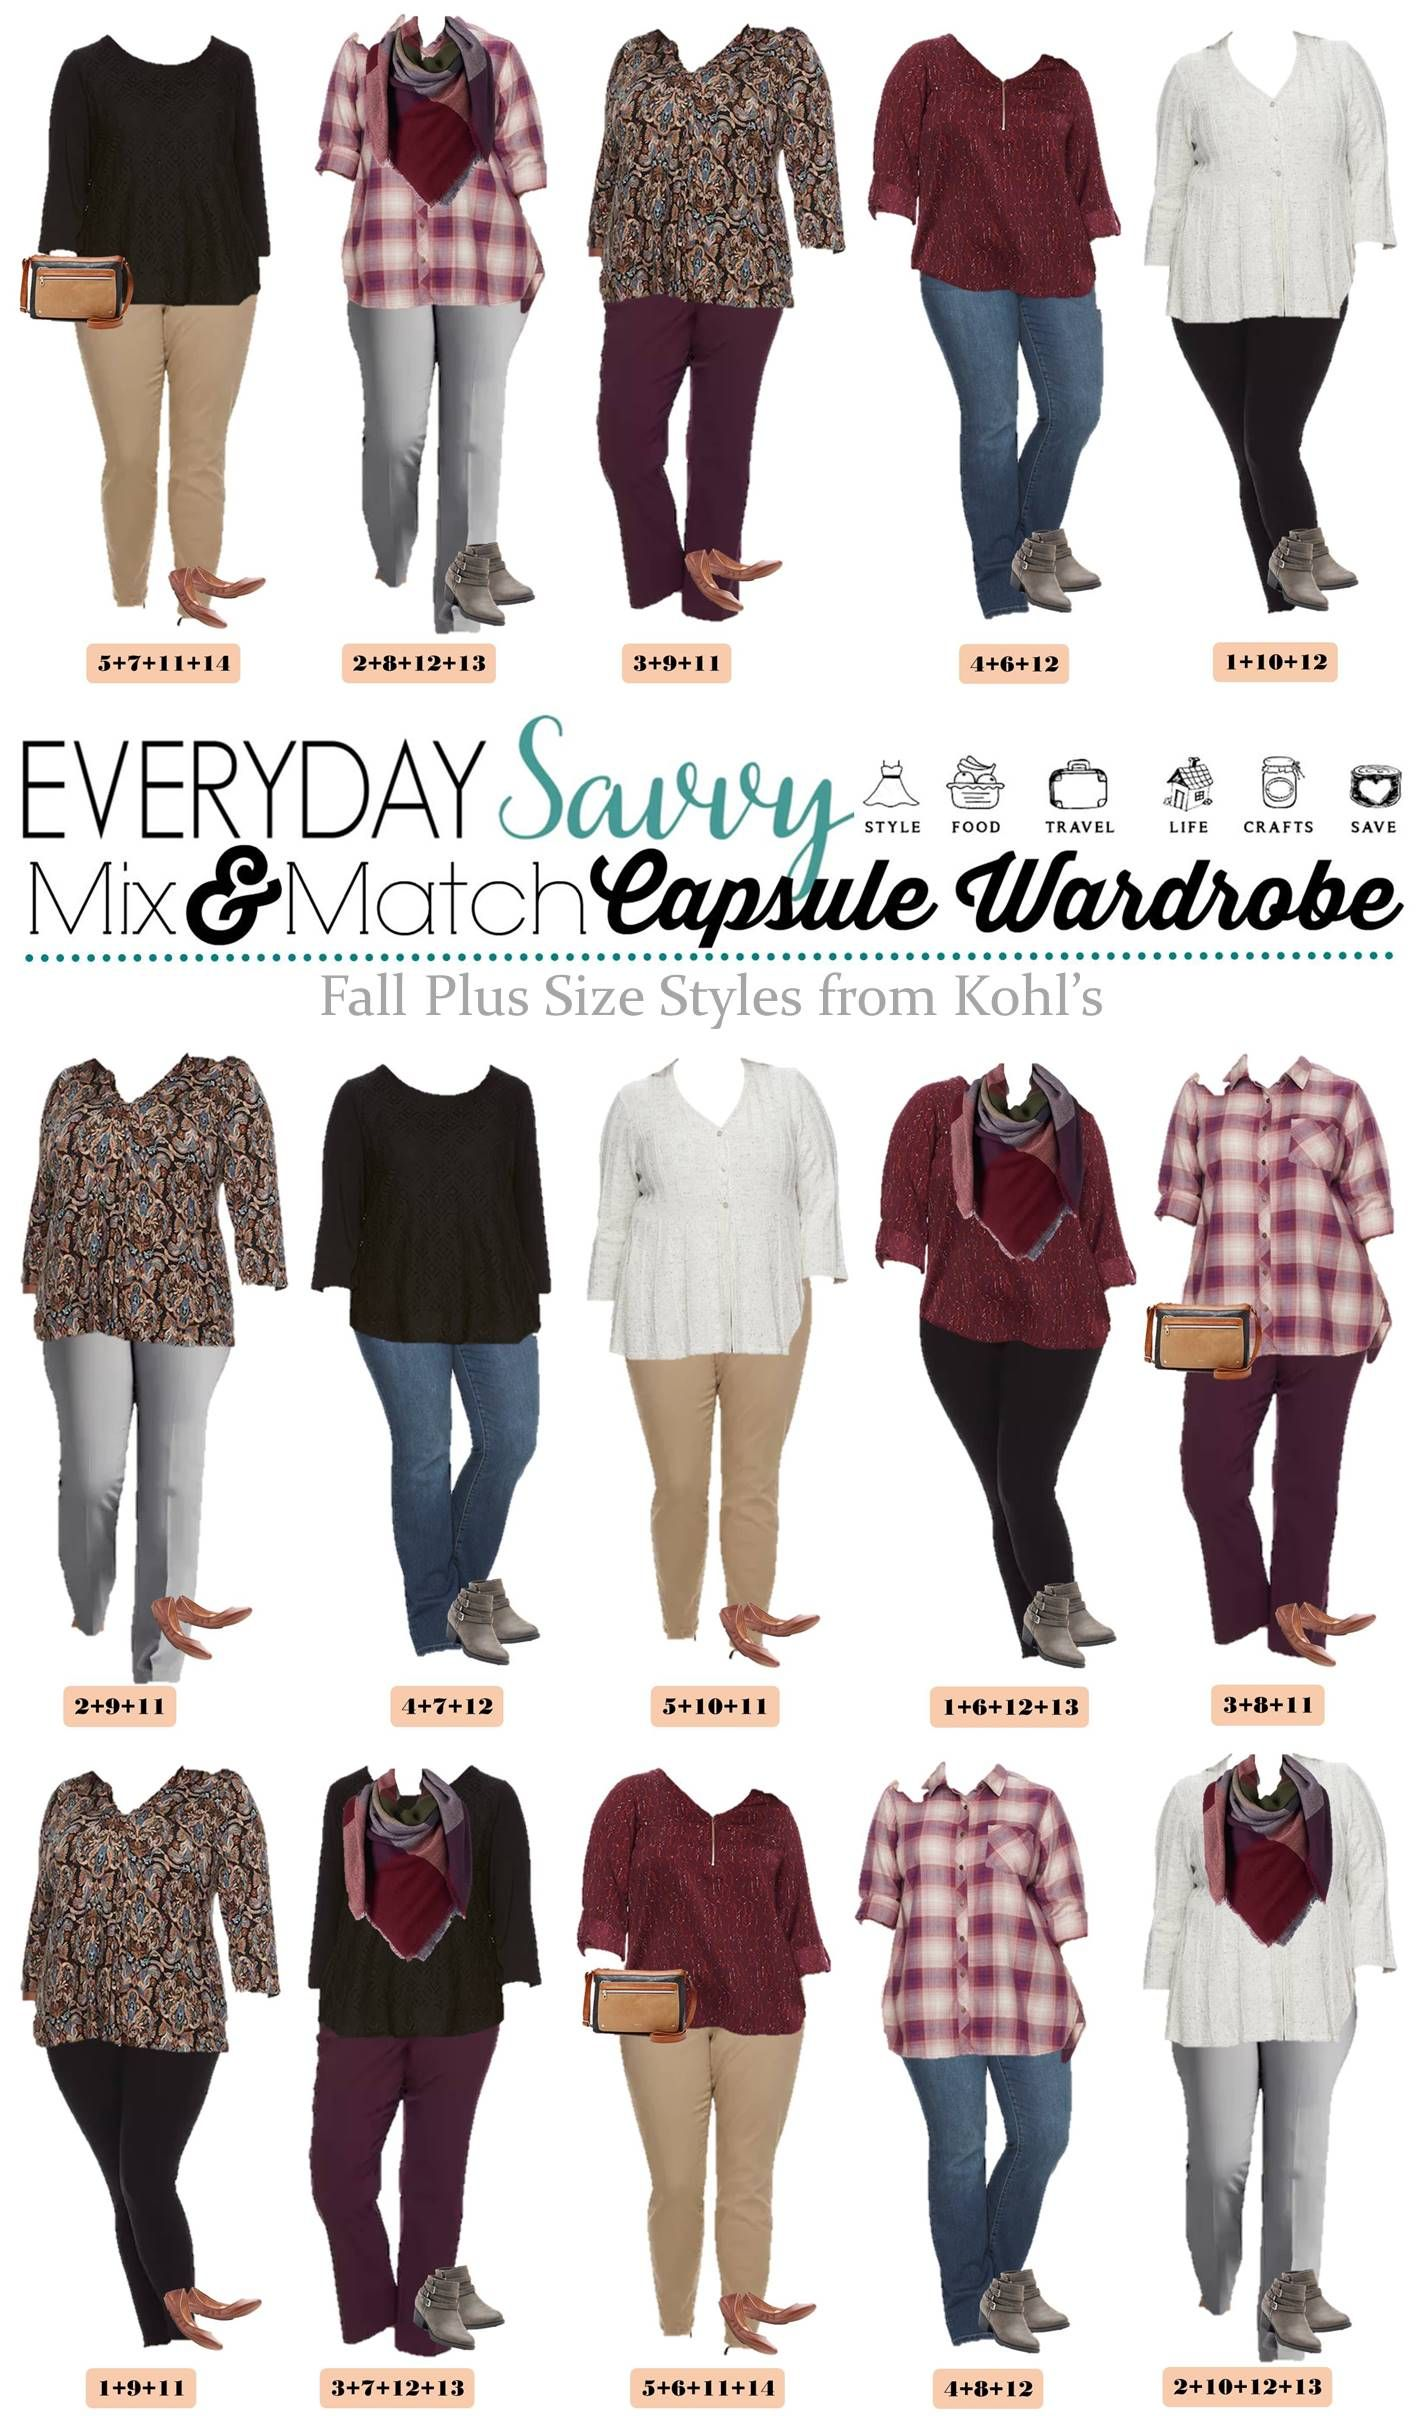 233ebd5a3cd Check out these super cute fall plus size outfits from Kohls. The pieces  mix and match for 15 outfits that make a mini capsule wardrobe. via   everydaysavvy